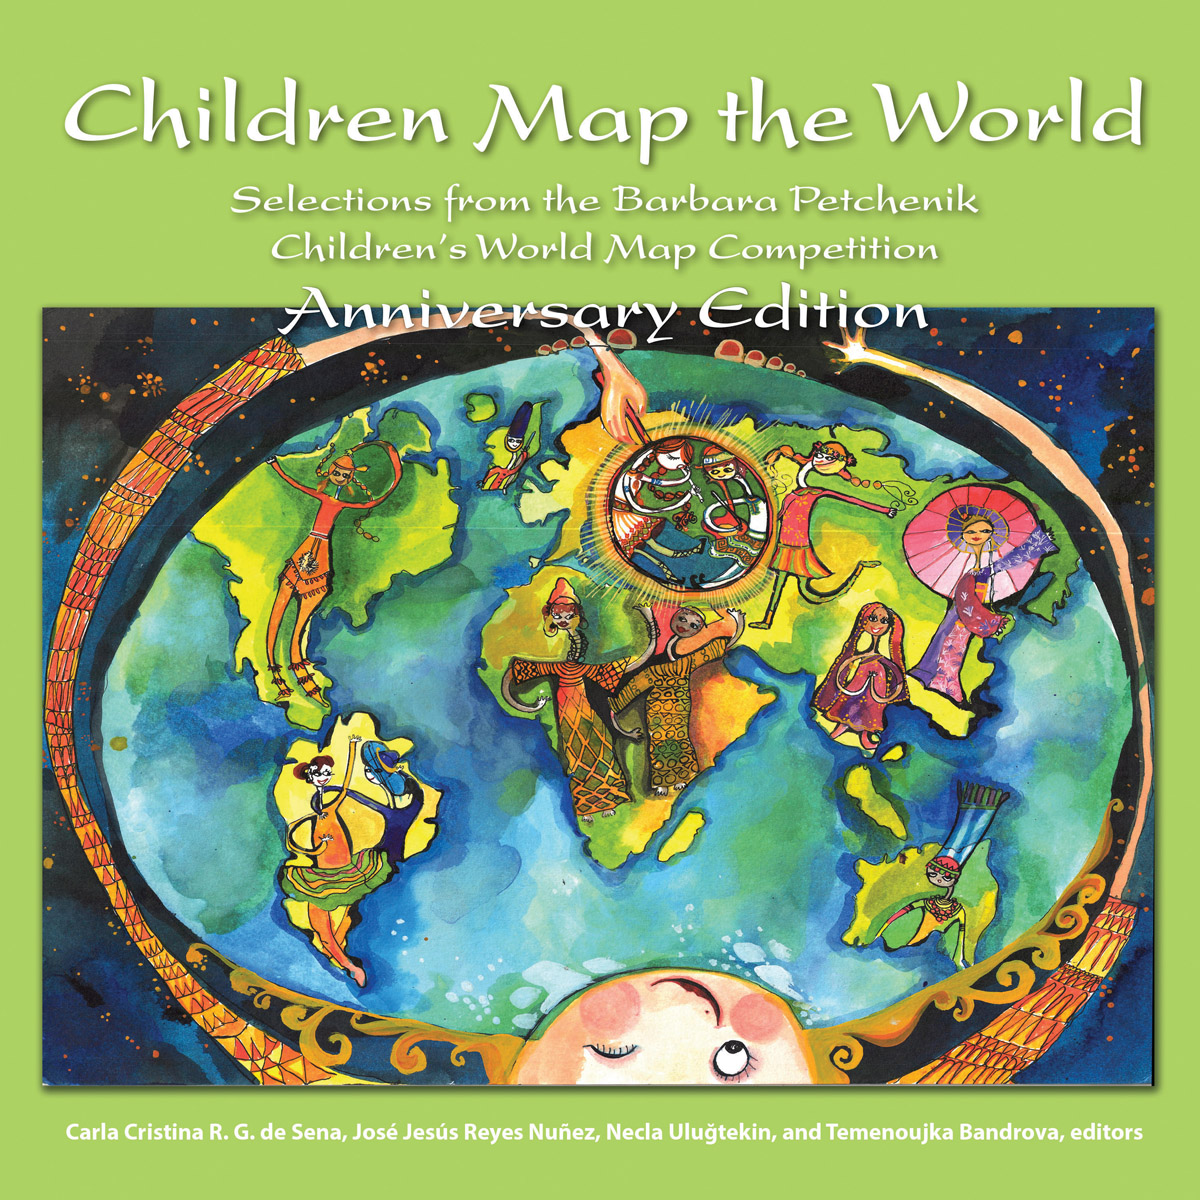 This anniversary edition includes 70 maps and pieces of geographic art from the Barbara Petchenik Children's World Map Competition, sponsored by the International Cartographic Association (ICA).